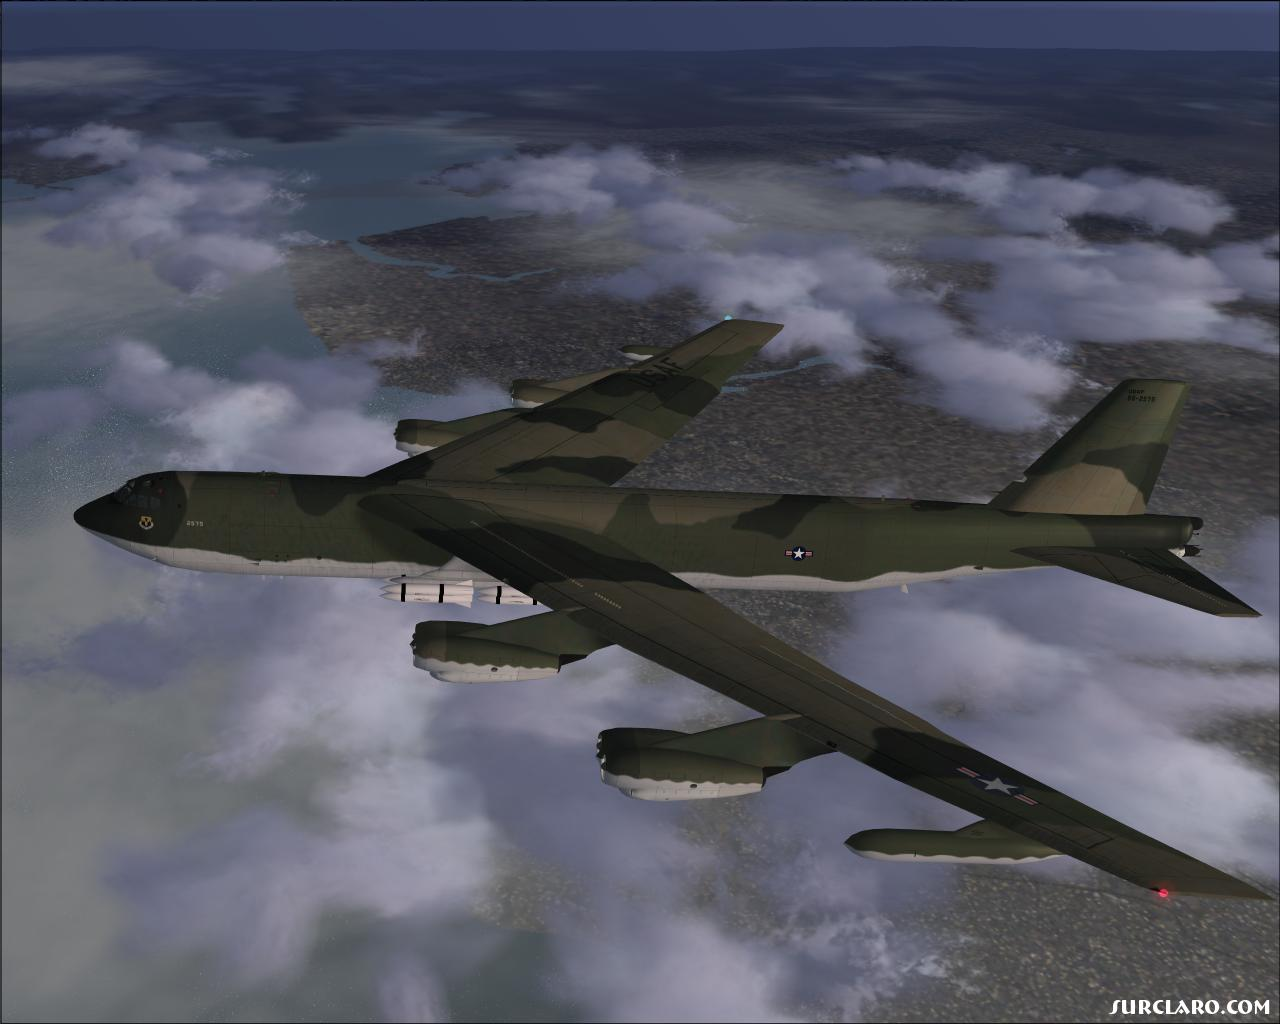 Out for an early morning bombing run over England, just kidding brettr don't be scared..lol - Photo 13571